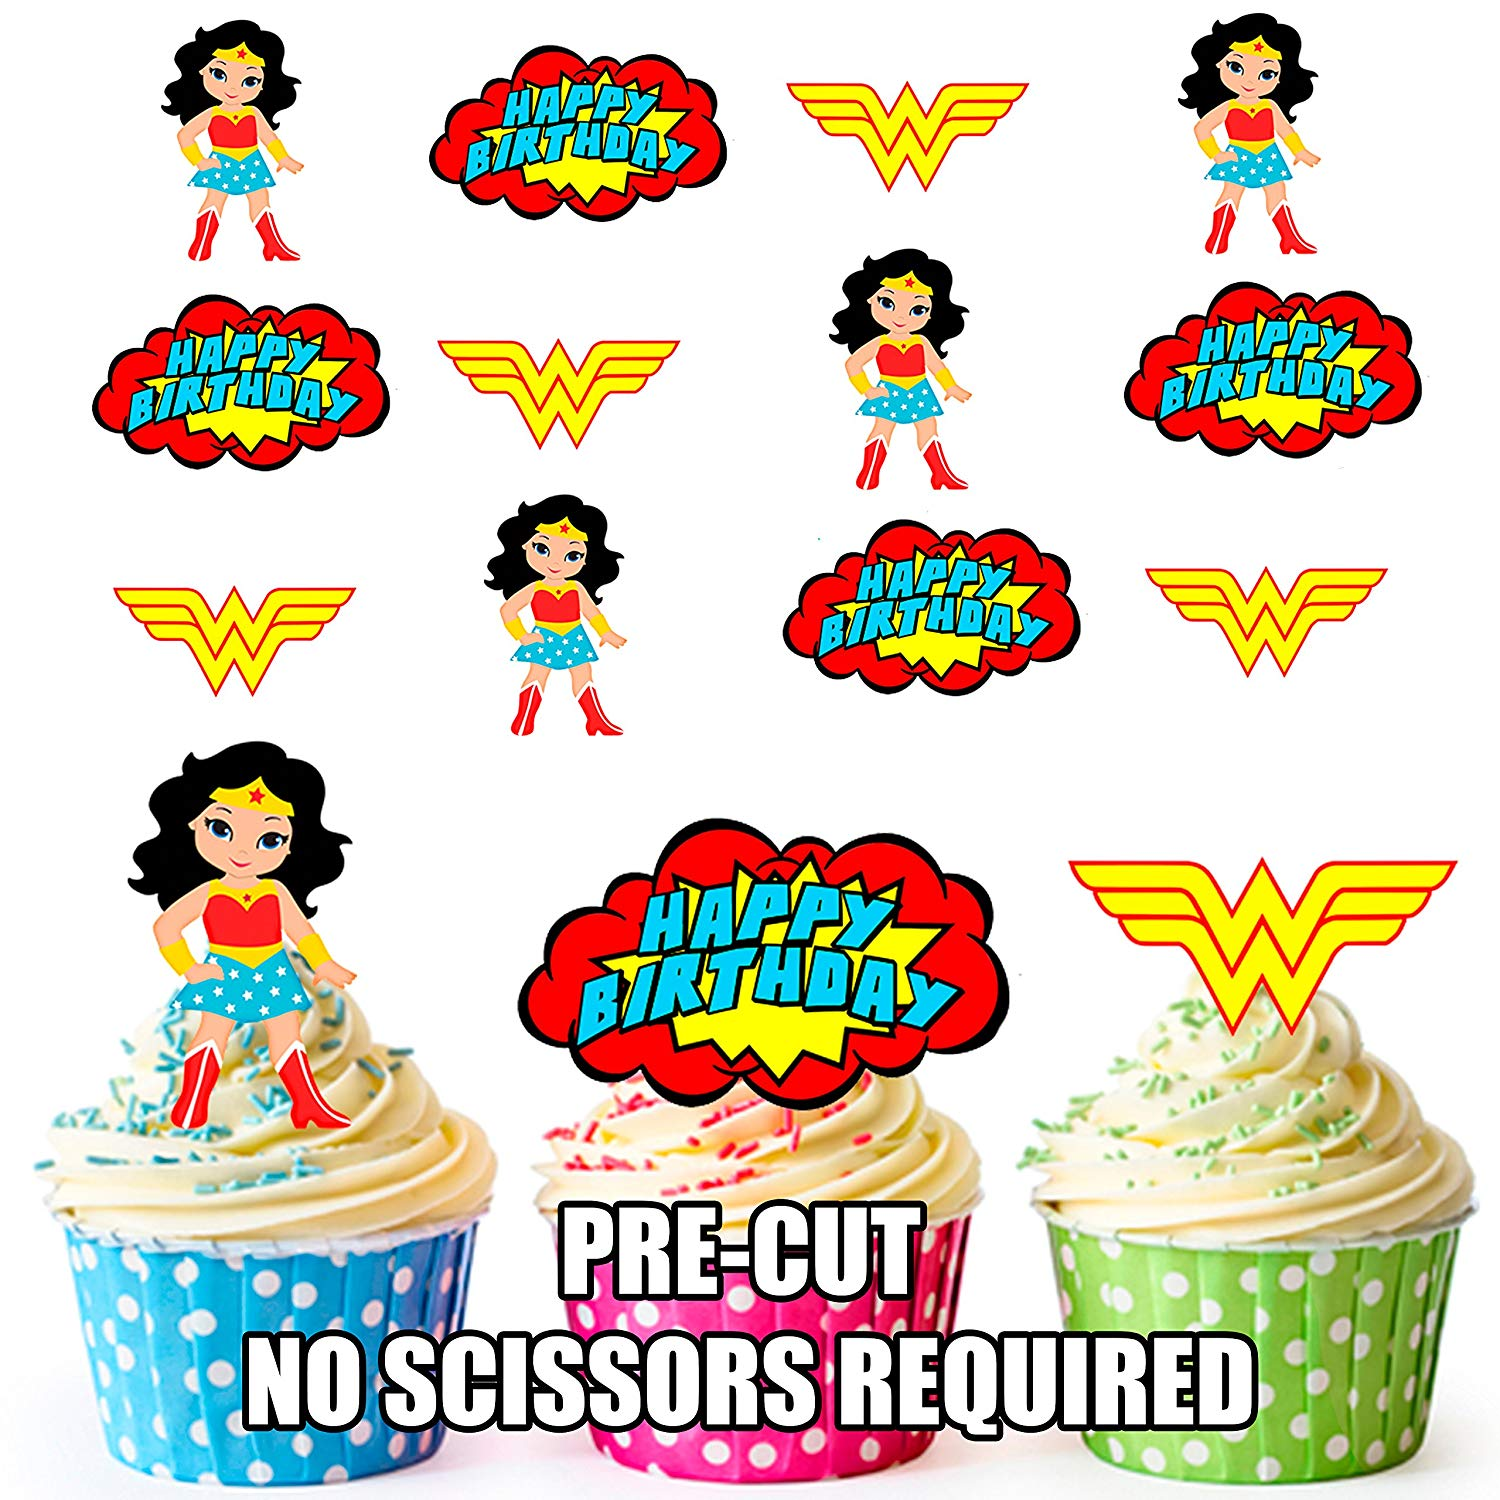 Woman cake topper clipart png free stock AK Giftshop PRE-CUT Wonder Woman Superhero Happy Birthday Pack - Edible  Cupcake Toppers/Cake Decorations (Pack of 12) png free stock